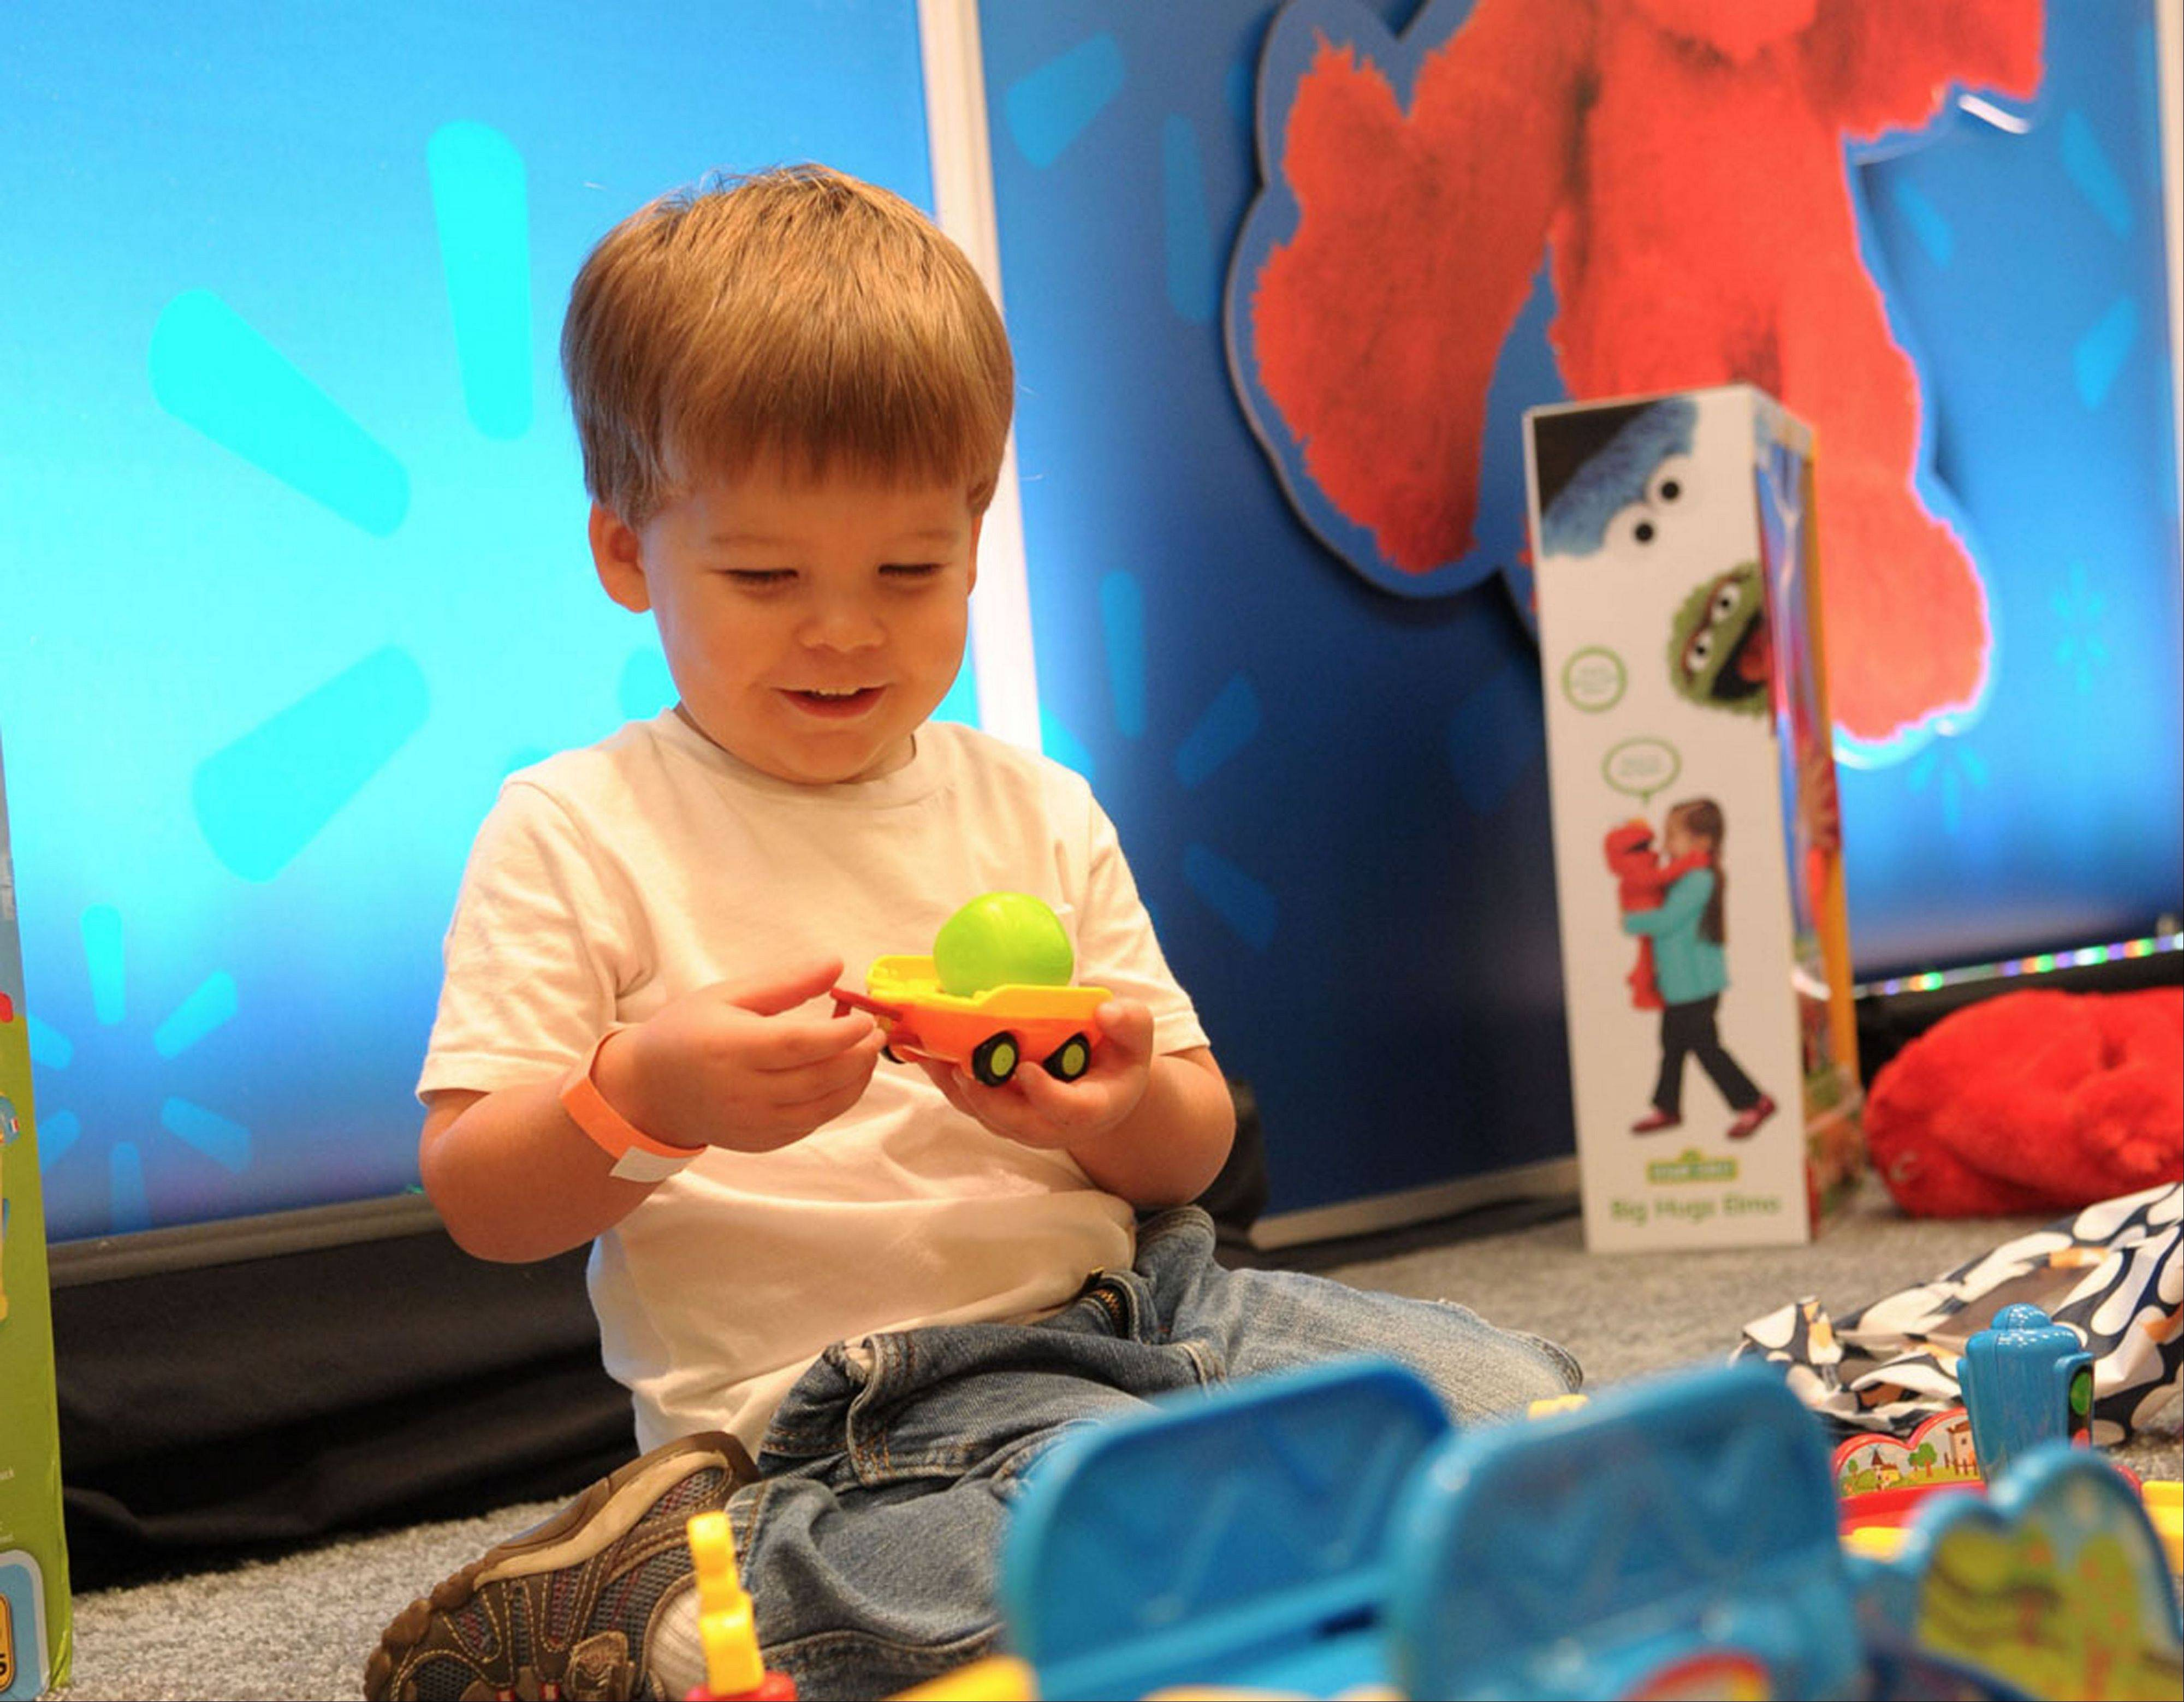 One of about 1,000 boys and girls aged 18 months to 10 years plays with a toy as part of an event during in August. The children chose their favorites, resulting in a top 20 list of kid-approved toys.